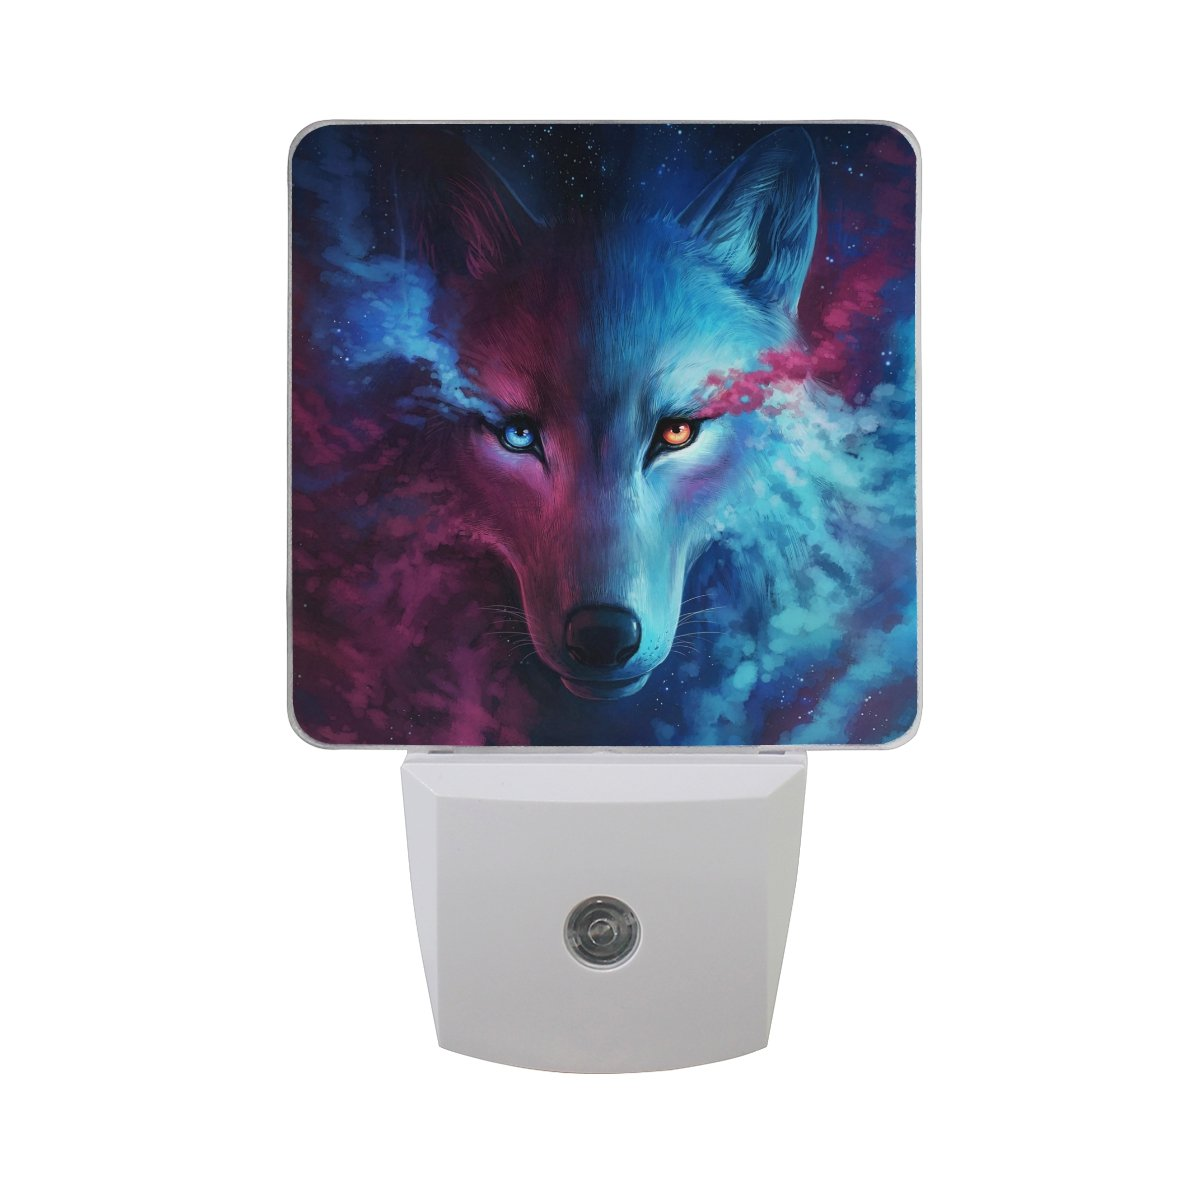 Naanle Set of 2 Fantasy Wolf with Starry Sky Galaxy Nebula Yin and Yang Design Movie Artwork Auto Sensor LED Dusk to Dawn Night Light Plug in Indoor for Adults